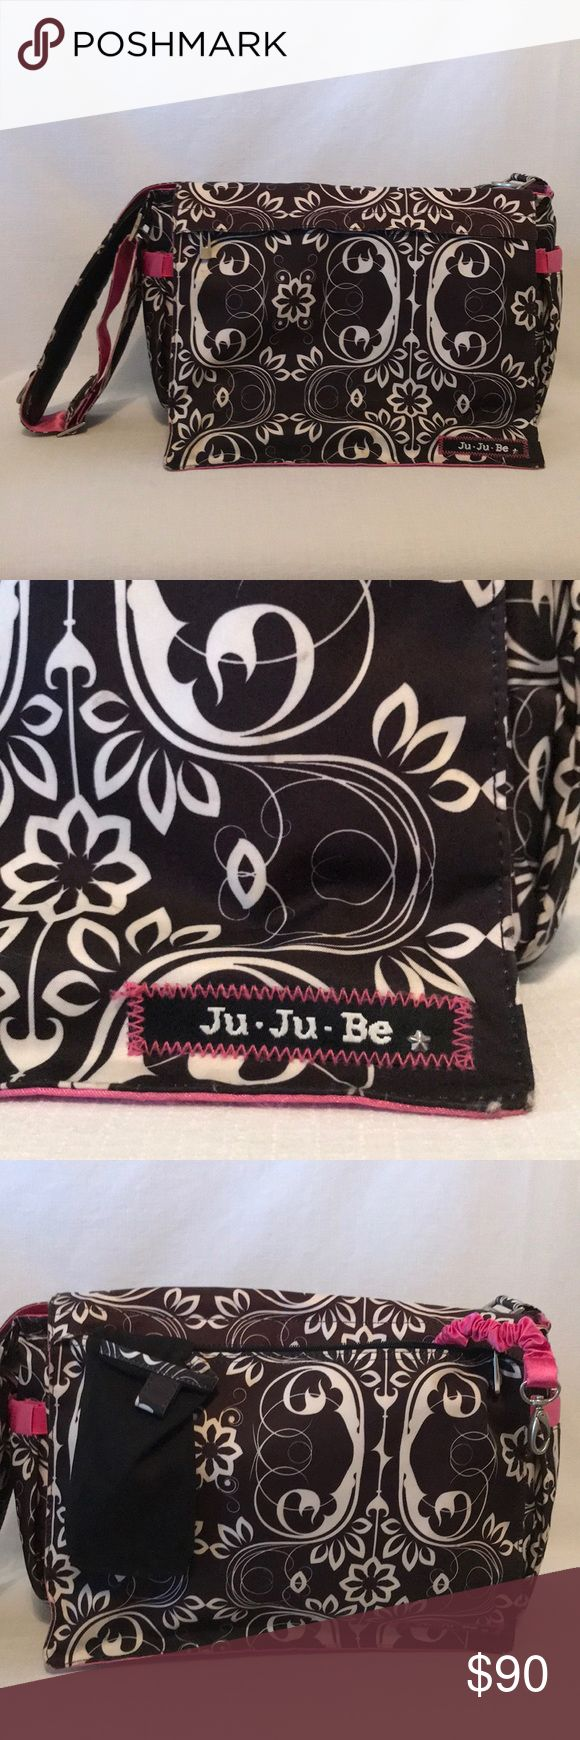 ✨Ju-Ju-Be All Diaper Bag Shadow Waltz✨ This is a great diaper bag with lots of extra pockets, clips, etc.. See photos!! All of the hardware is metal & is well made and heavy duty but very pretty and stylish. The messenger strap is adjustable in length, has memory foam shoulder pad, and 3 separate metal rings to clip things on. Teflon treated outer fabric and AglON protected linings, easy clean up and antimicrobial Mommy pocket on front flap is AMAZING!  Does not include a changing pad…